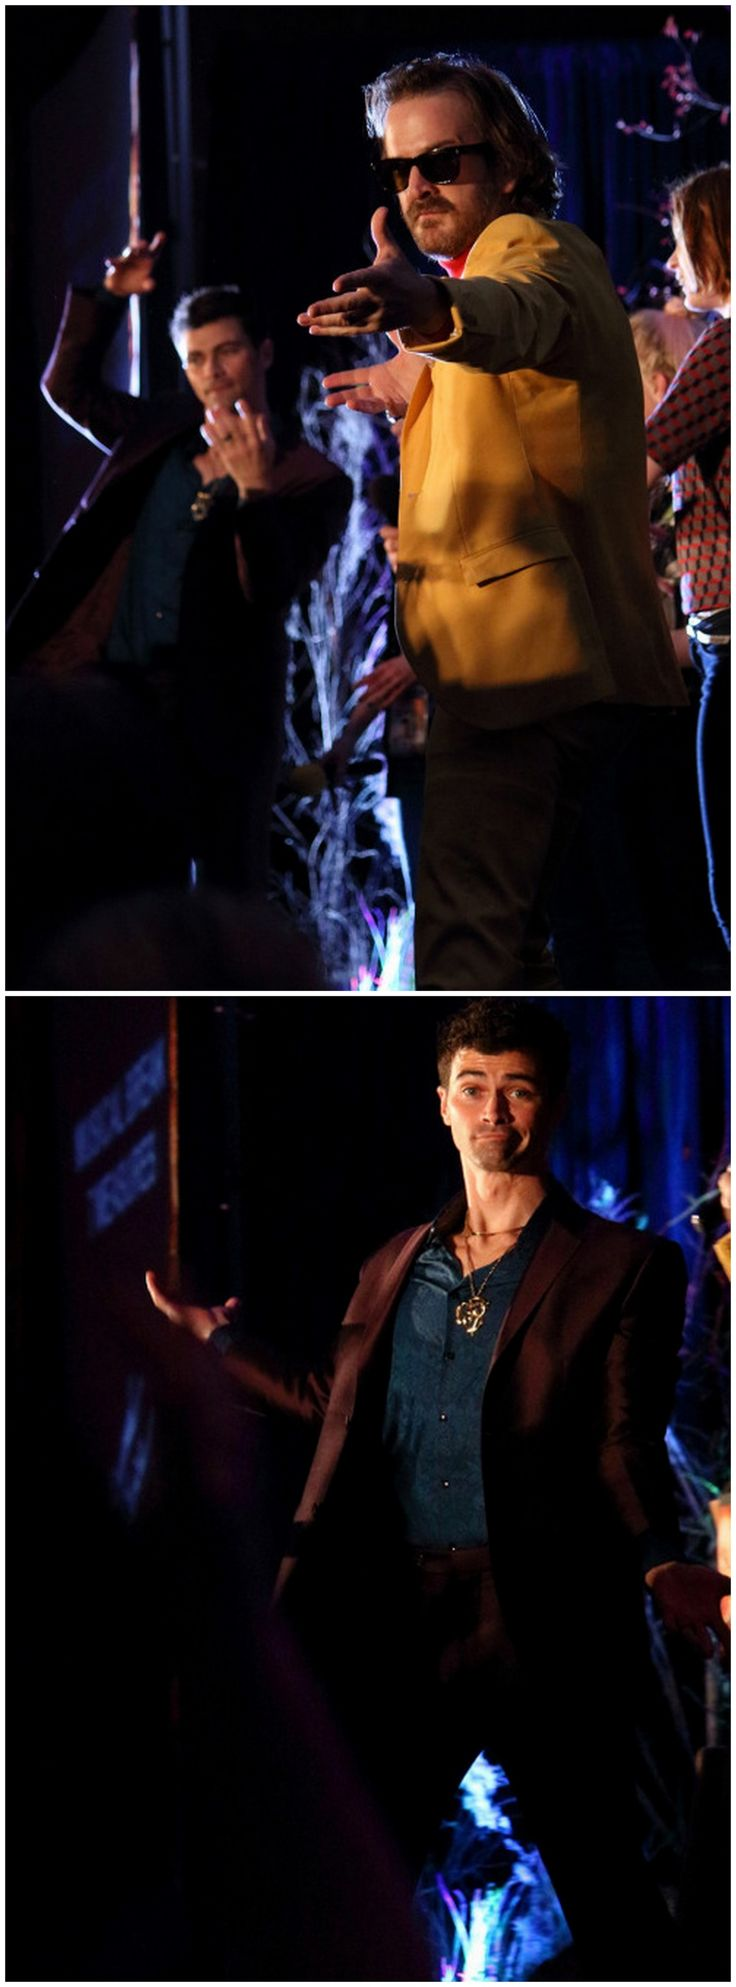 Richard and Matt looking handsome at karaoke! #SeaCon15